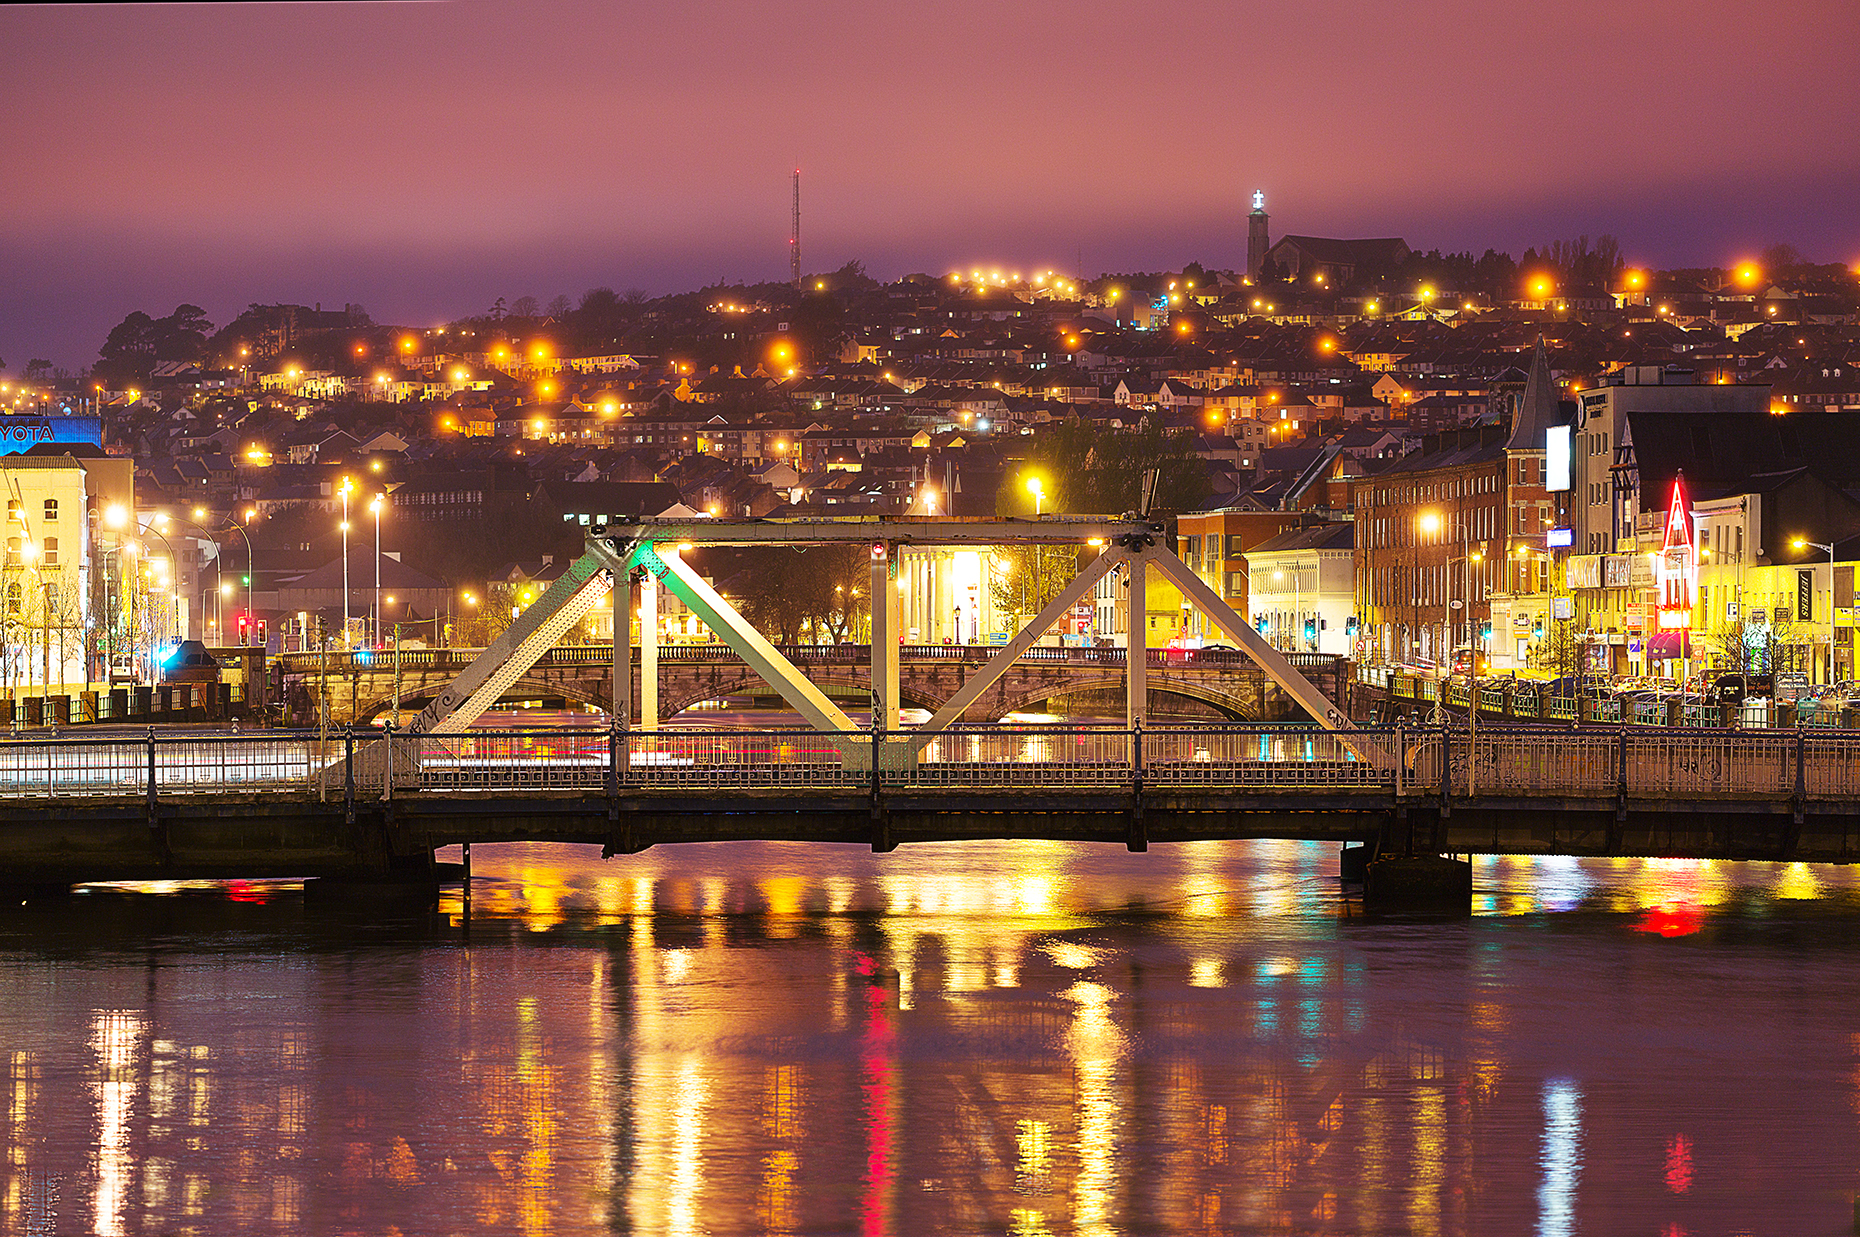 Cities at Night - Cork